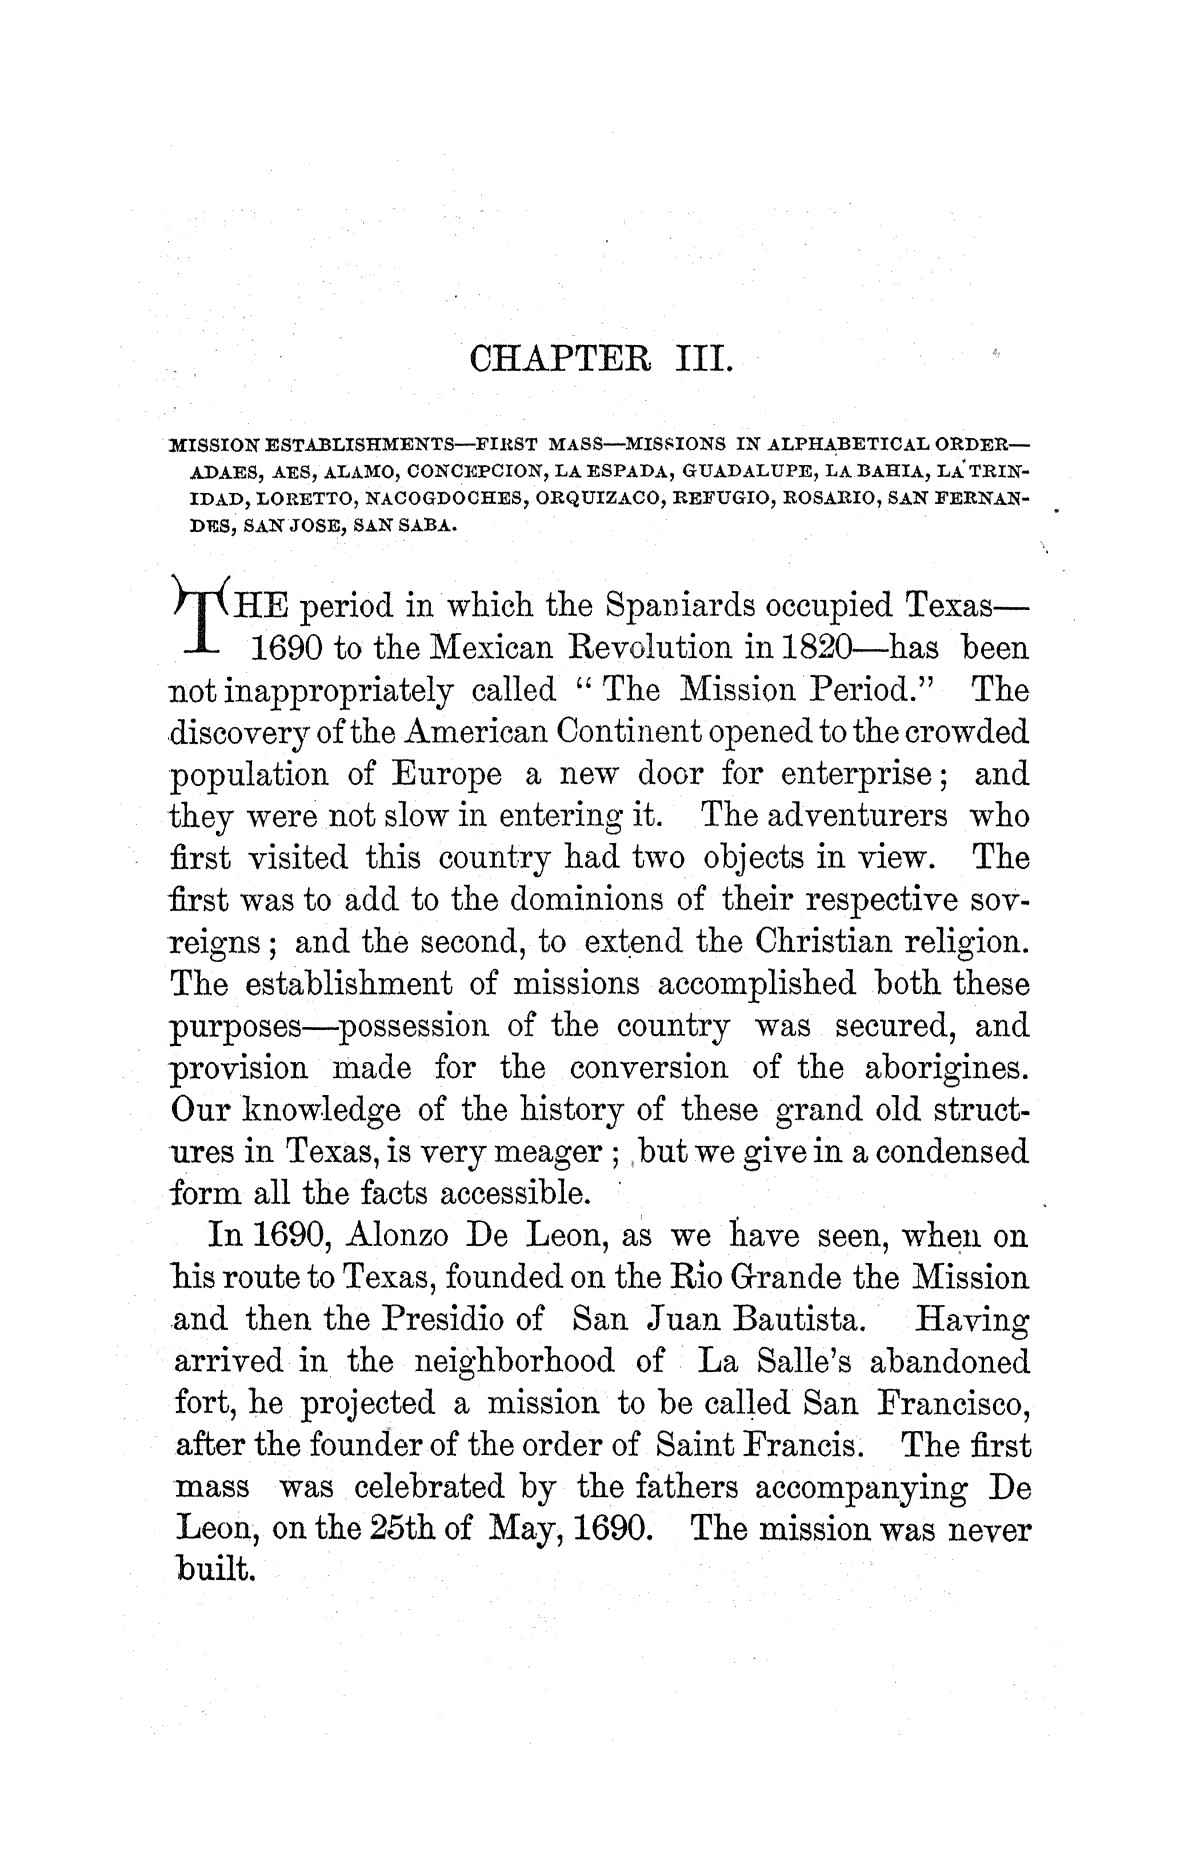 A pictorial history of Texas, from the earliest visits of European adventurers, to A.D. 1879. Embracing the periods of missions, colonization, the revolution the republic, and the state; also, a topographical description of the country ... together with its Indian tribes and their wars, and biographical sketches of hundreds of its leading historical characters. Also, a list of the countries, with historical and topical notes, and descriptions of the public institutions of the state.                                                                                                      [Sequence #]: 98 of 859